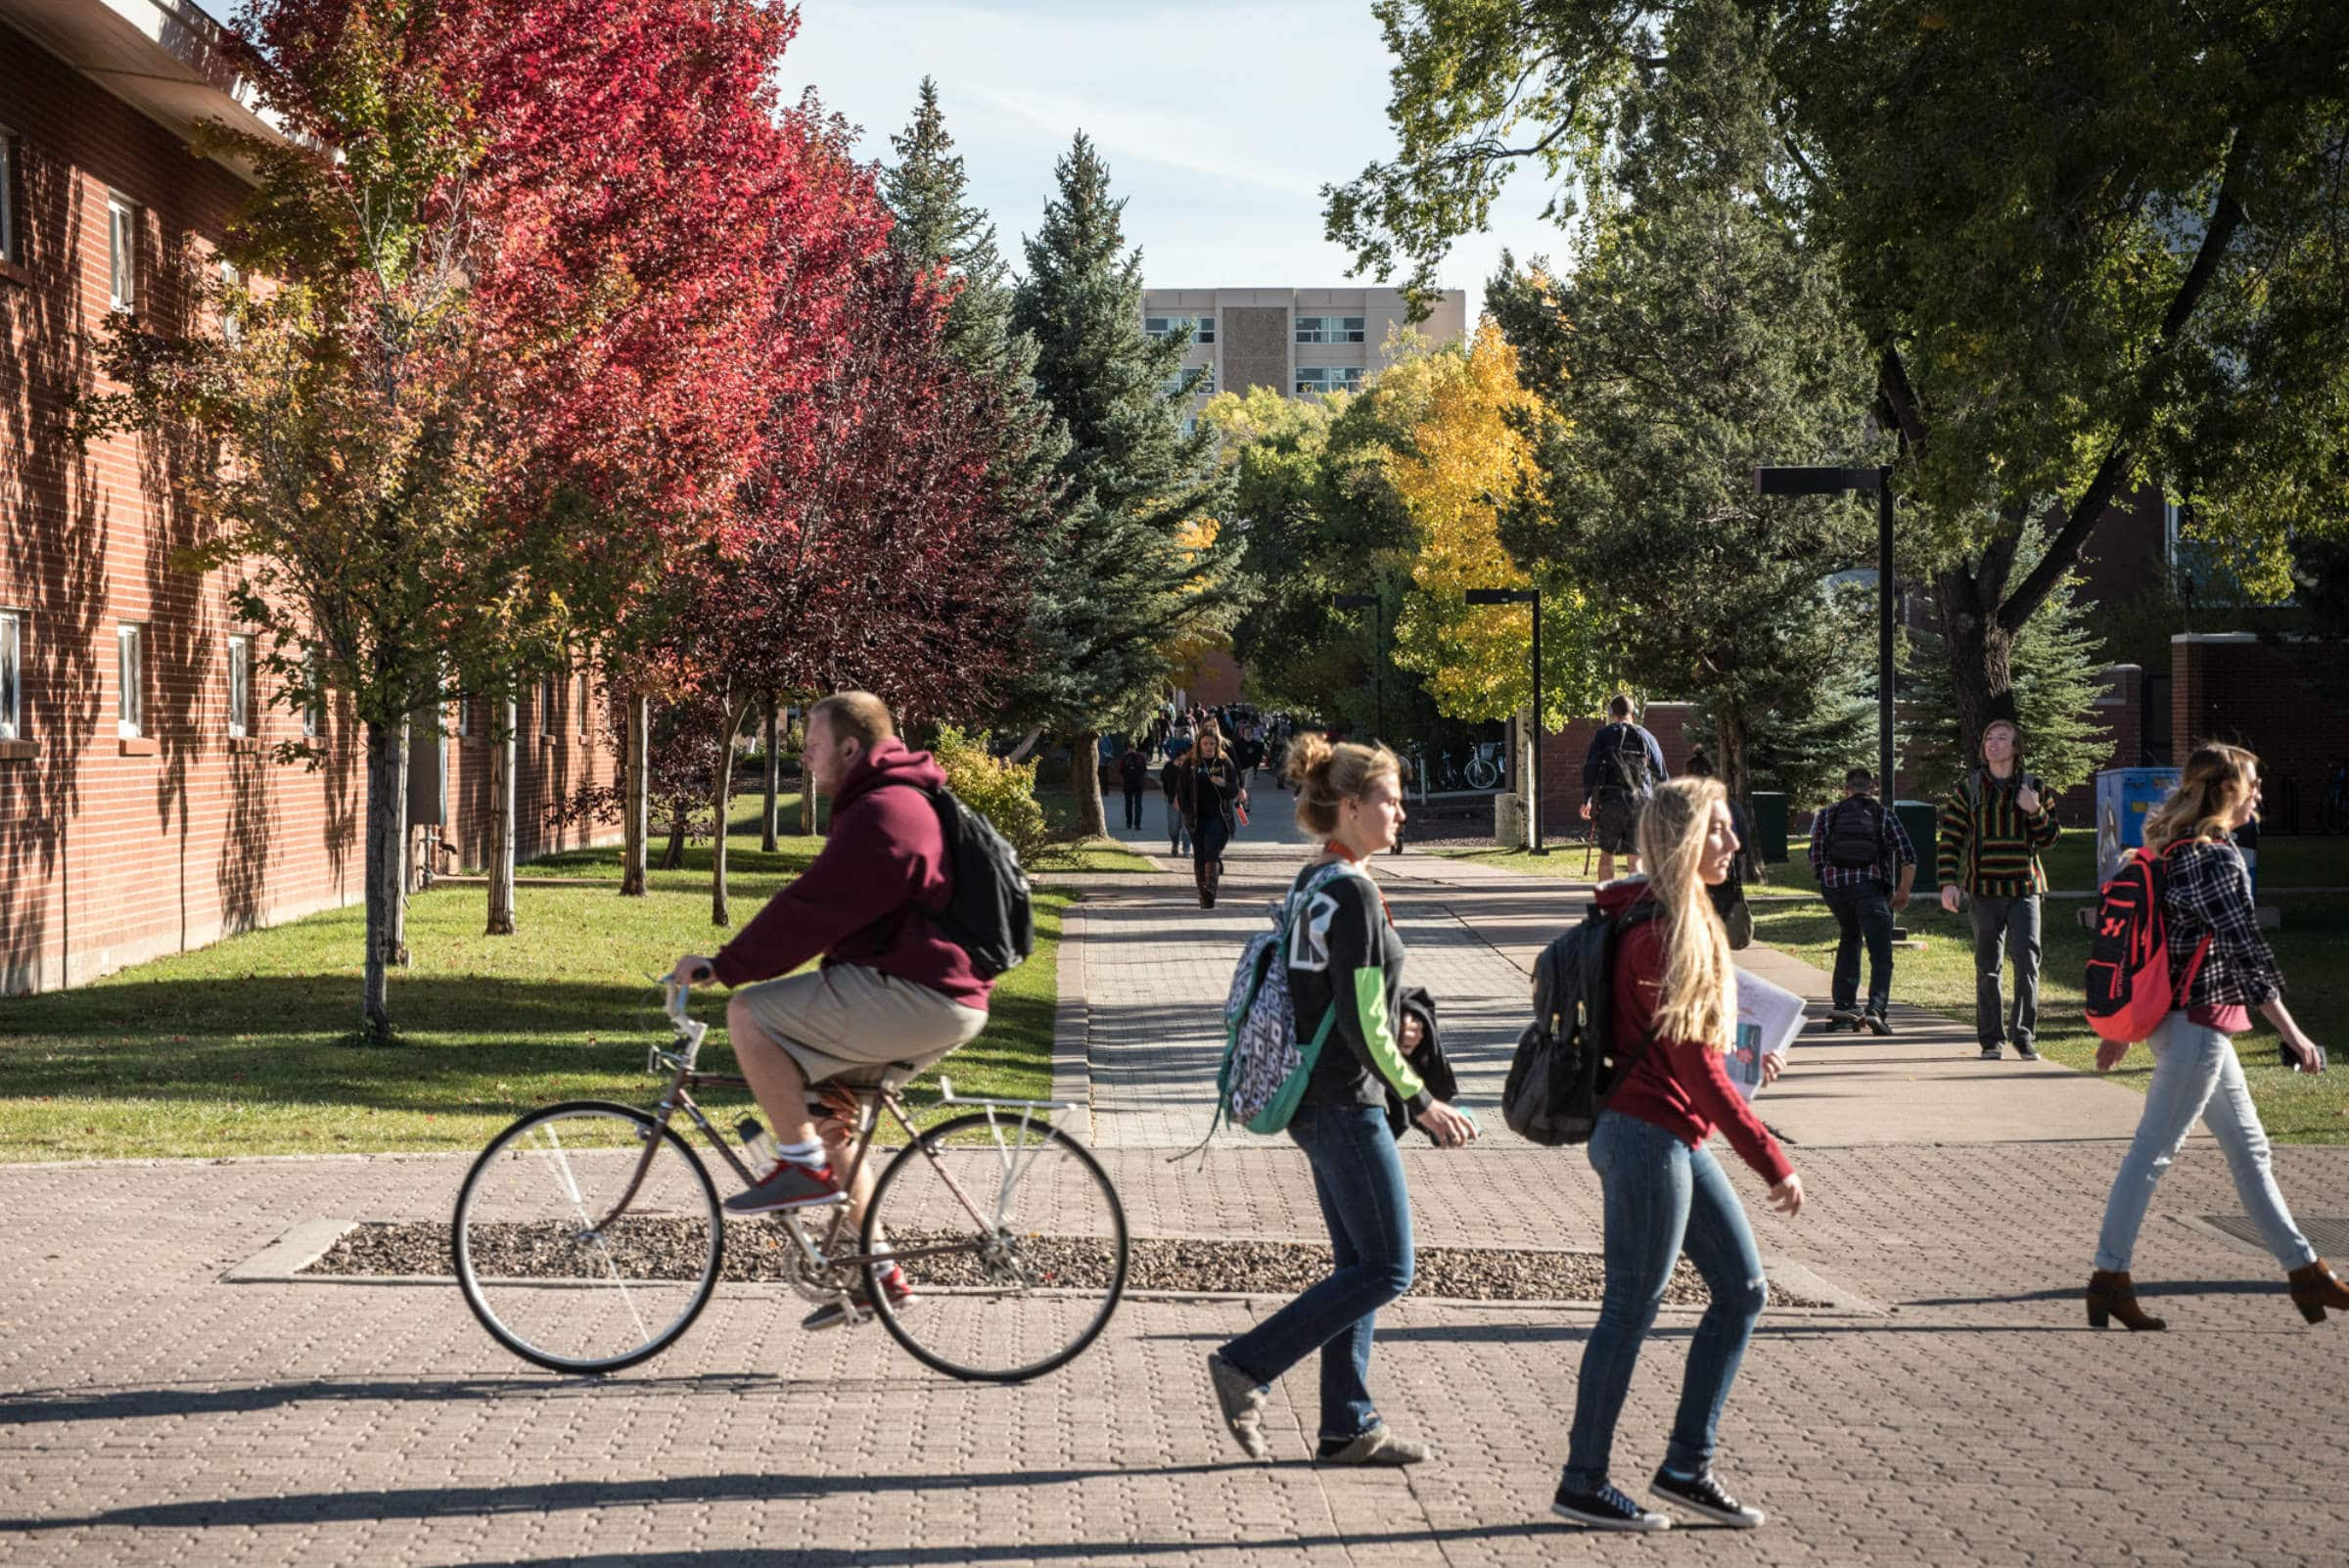 nau students on campus with autumn foliage